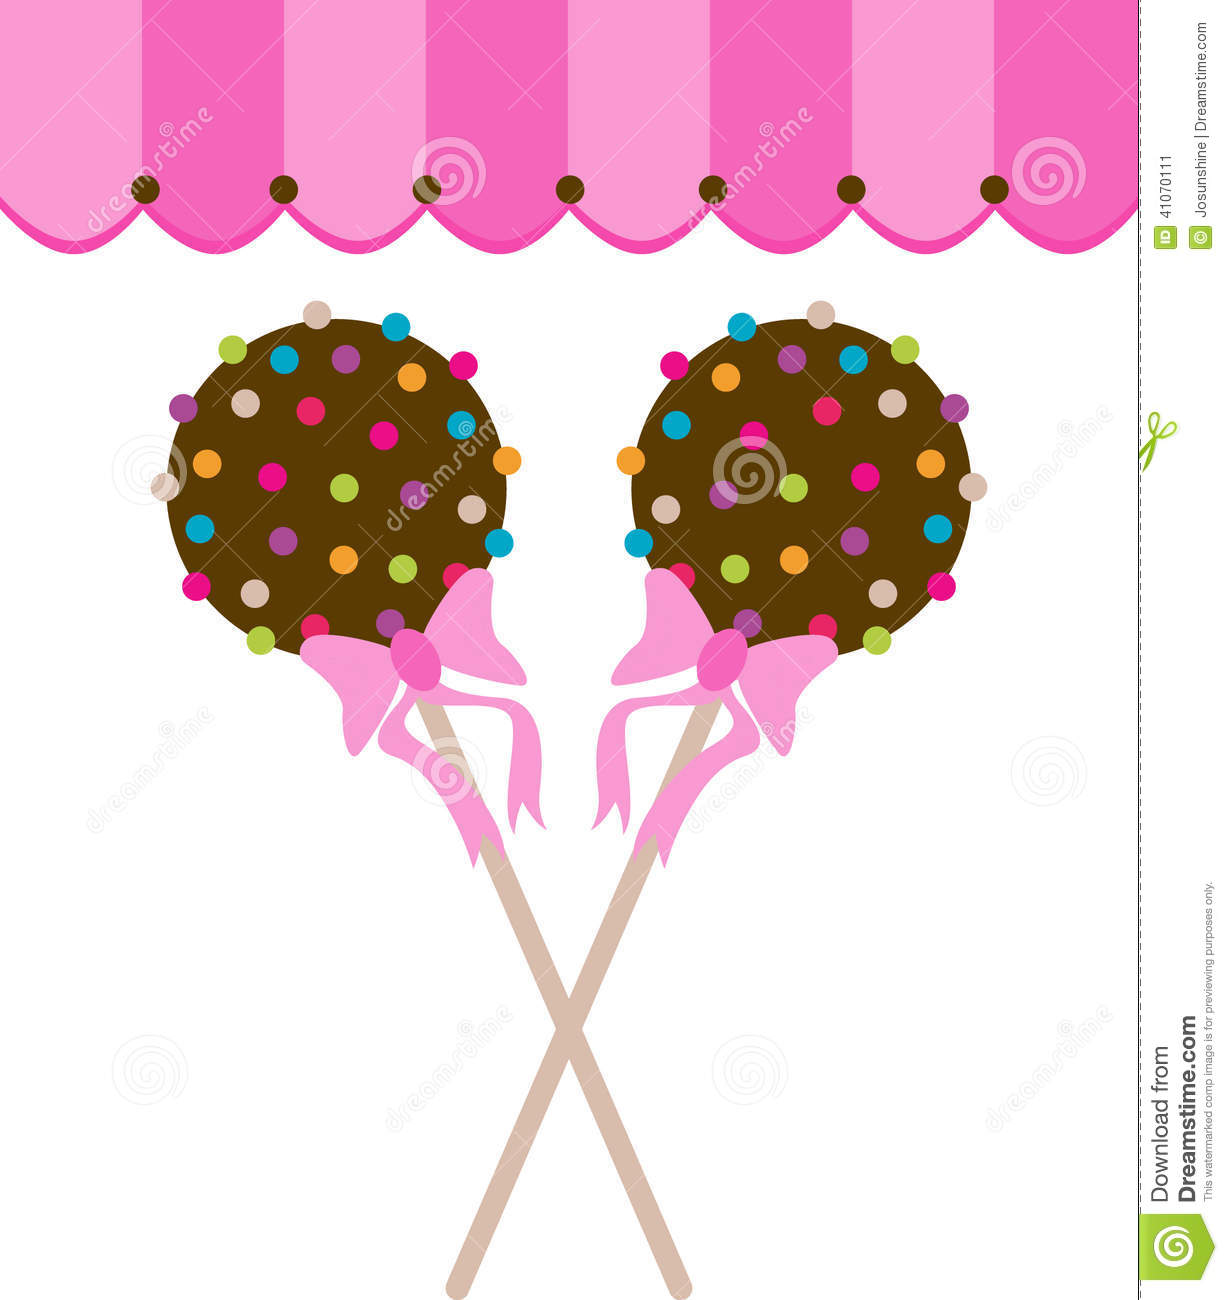 Cute Funny Cake Pops With Polka Dot Icing Pattern Vector Illustration